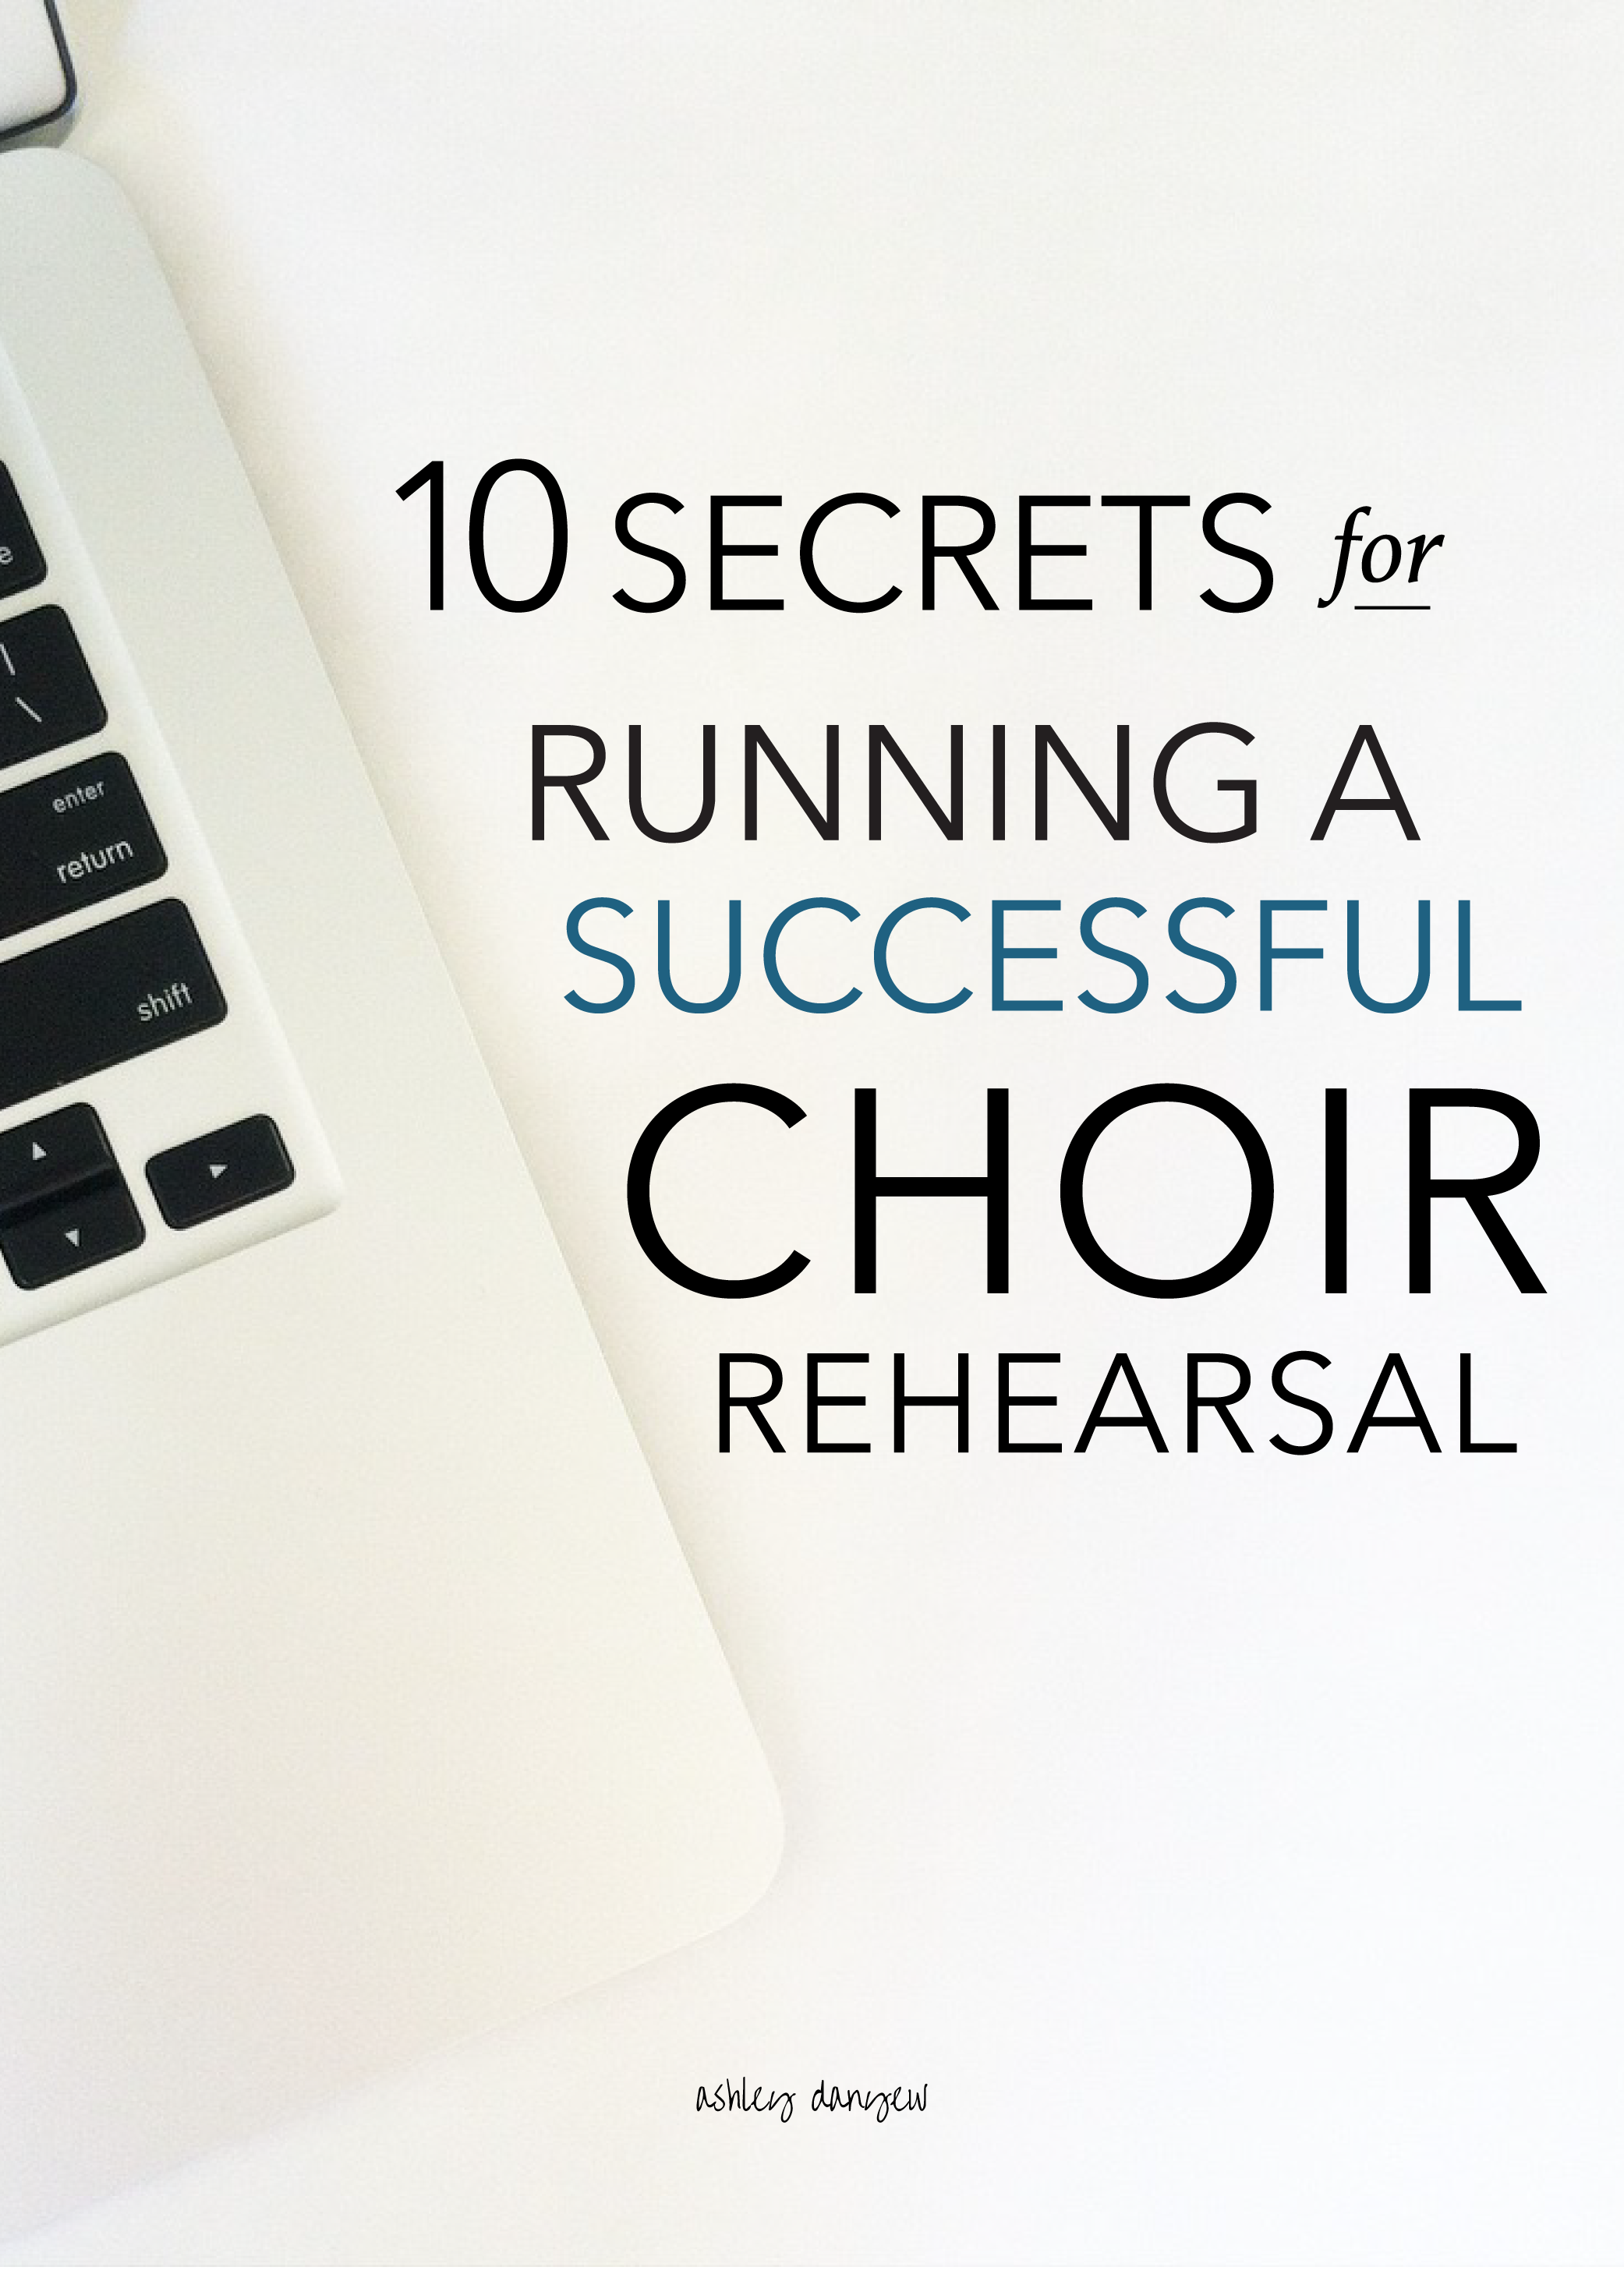 Copy of 10 Secrets to Running a Successful Choir Rehearsal